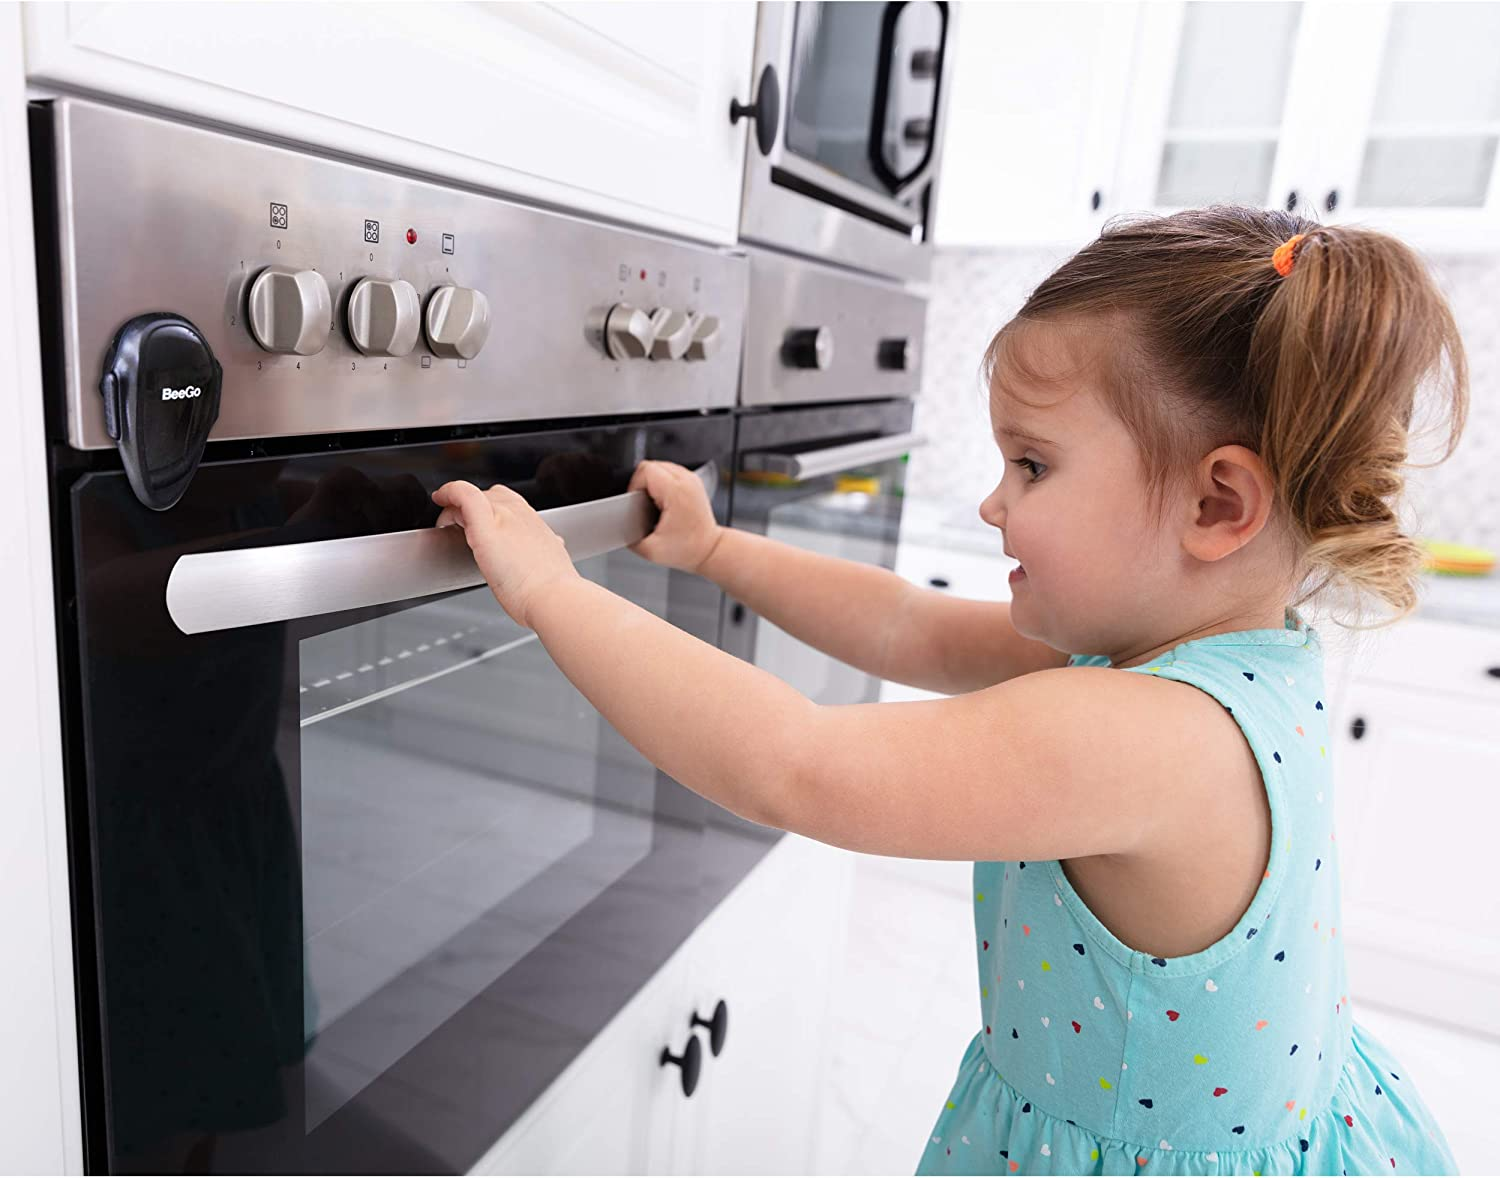 Easy Install Protect Babies /& Toddlers 1 x Lock BeeGo Oven Safety Child Lock